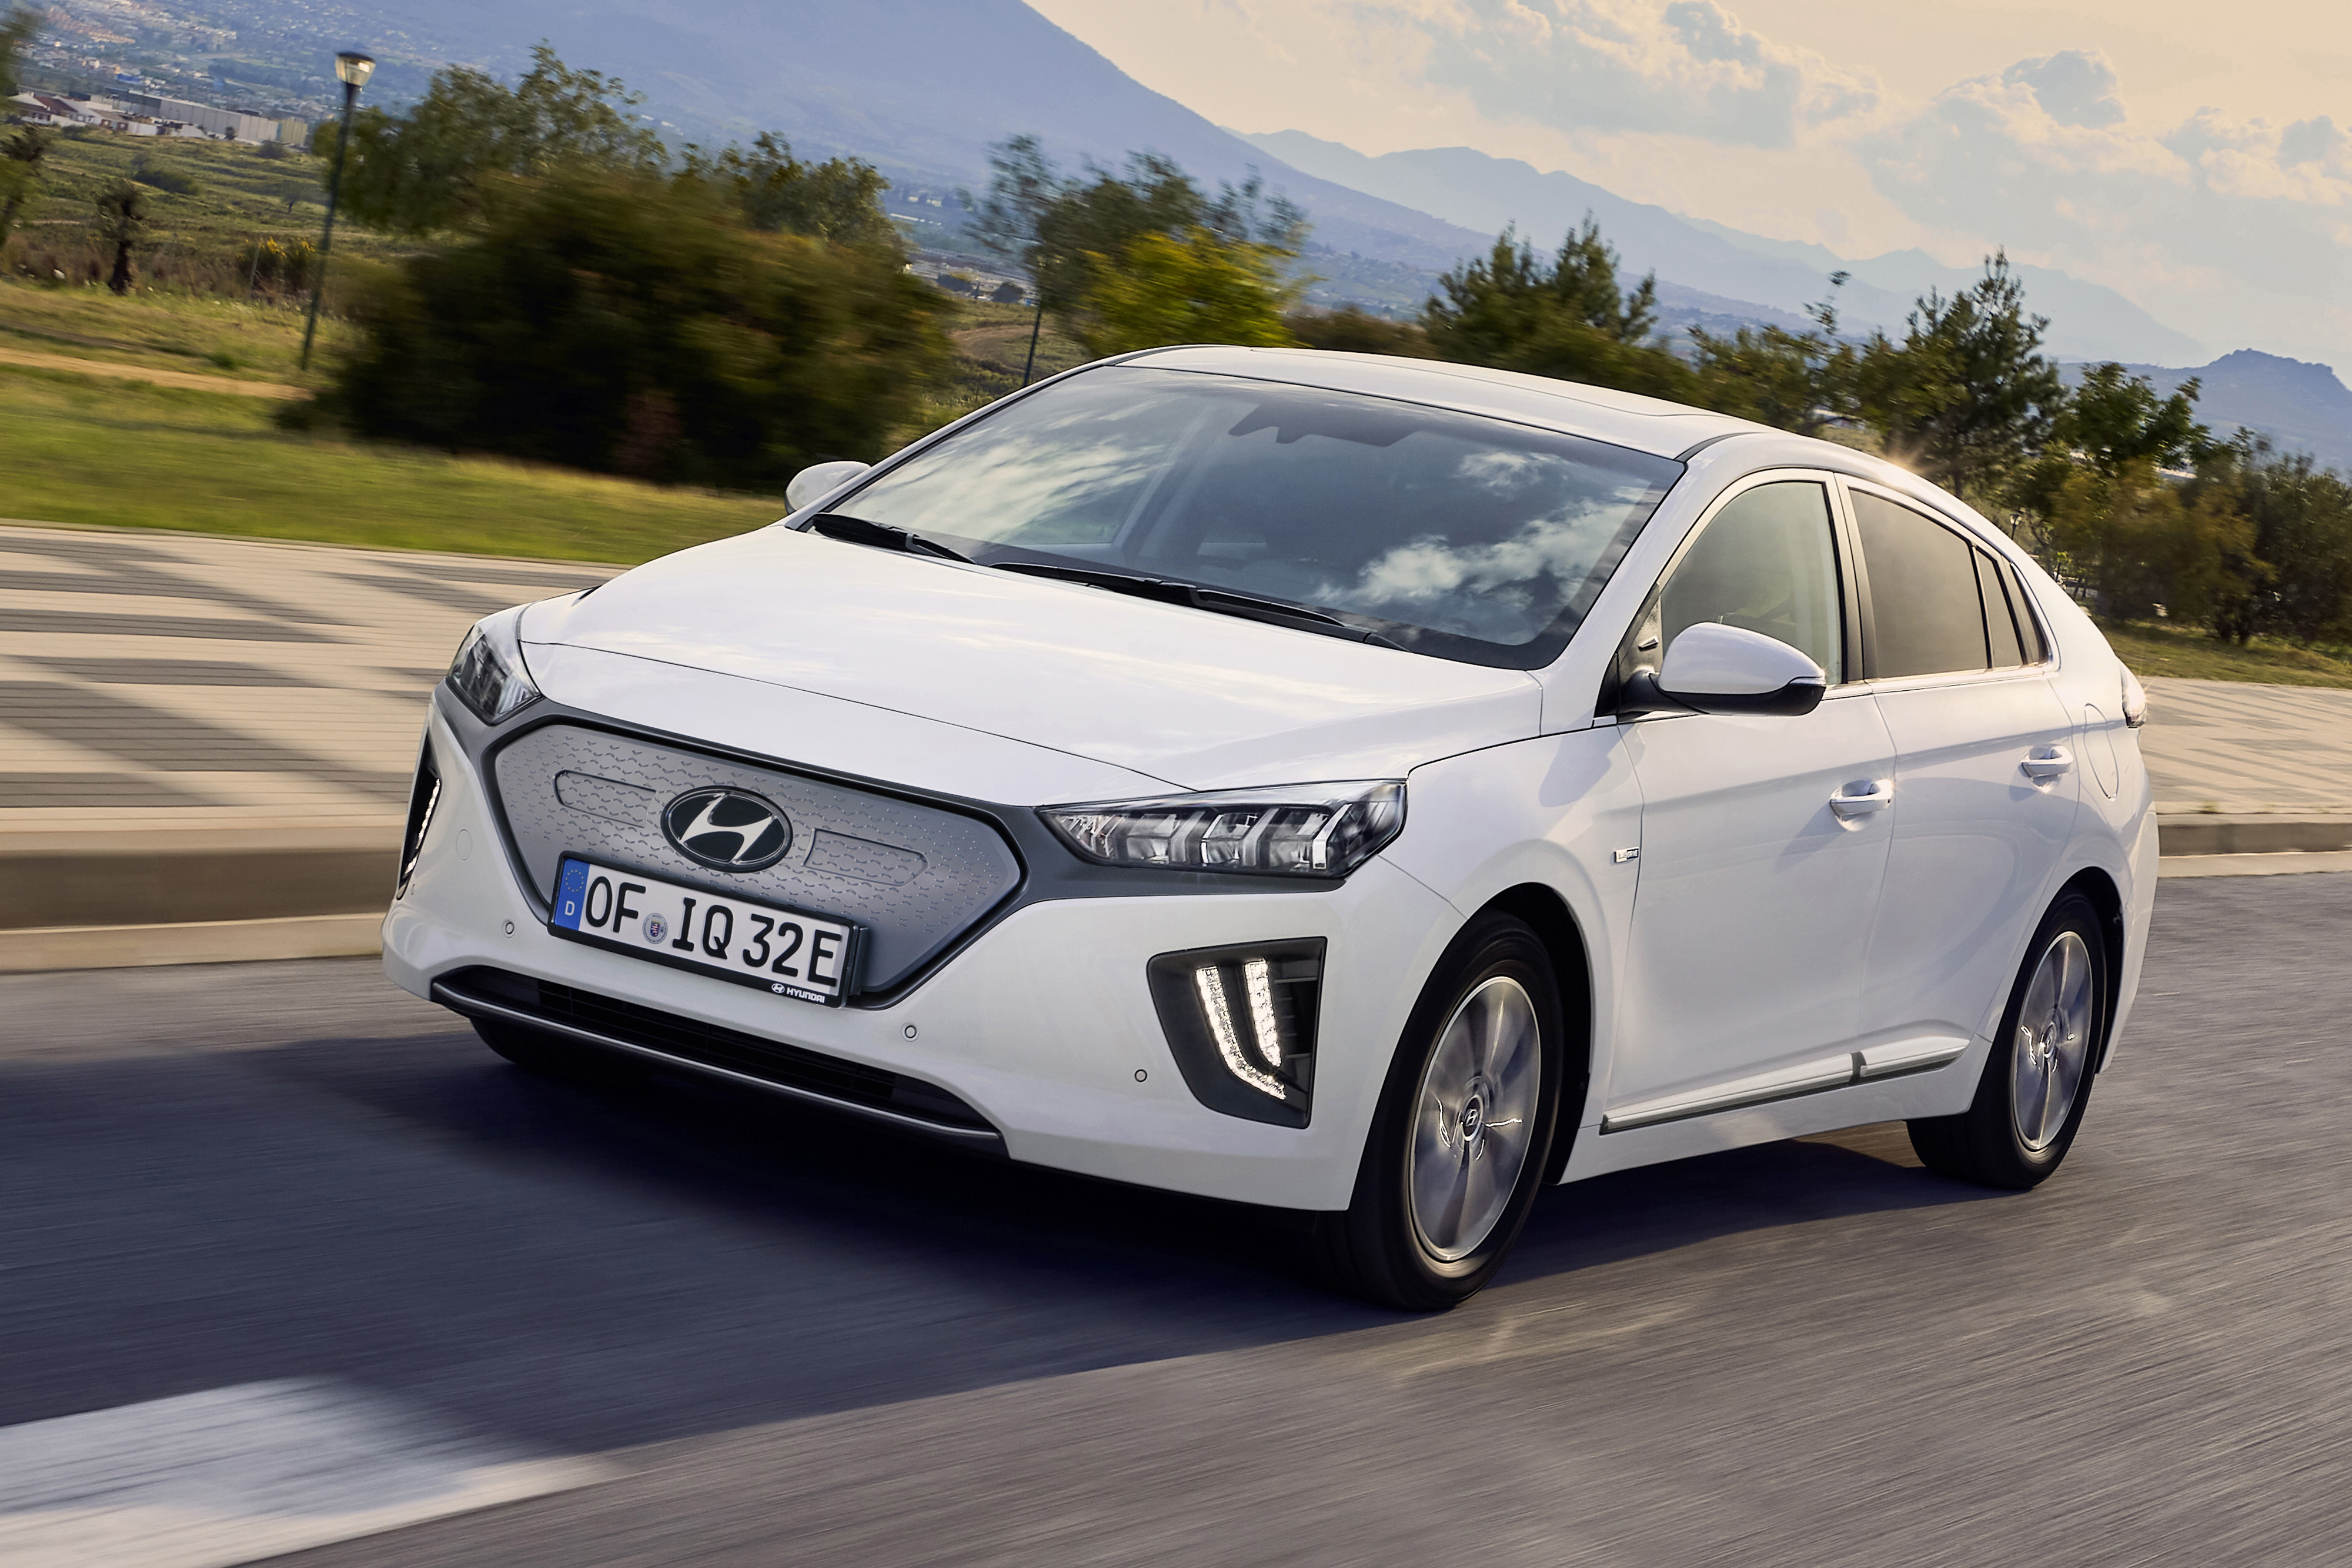 2020 Hyundai Ioniq Electrified Sedans Get Juiced for L.A. Auto Show